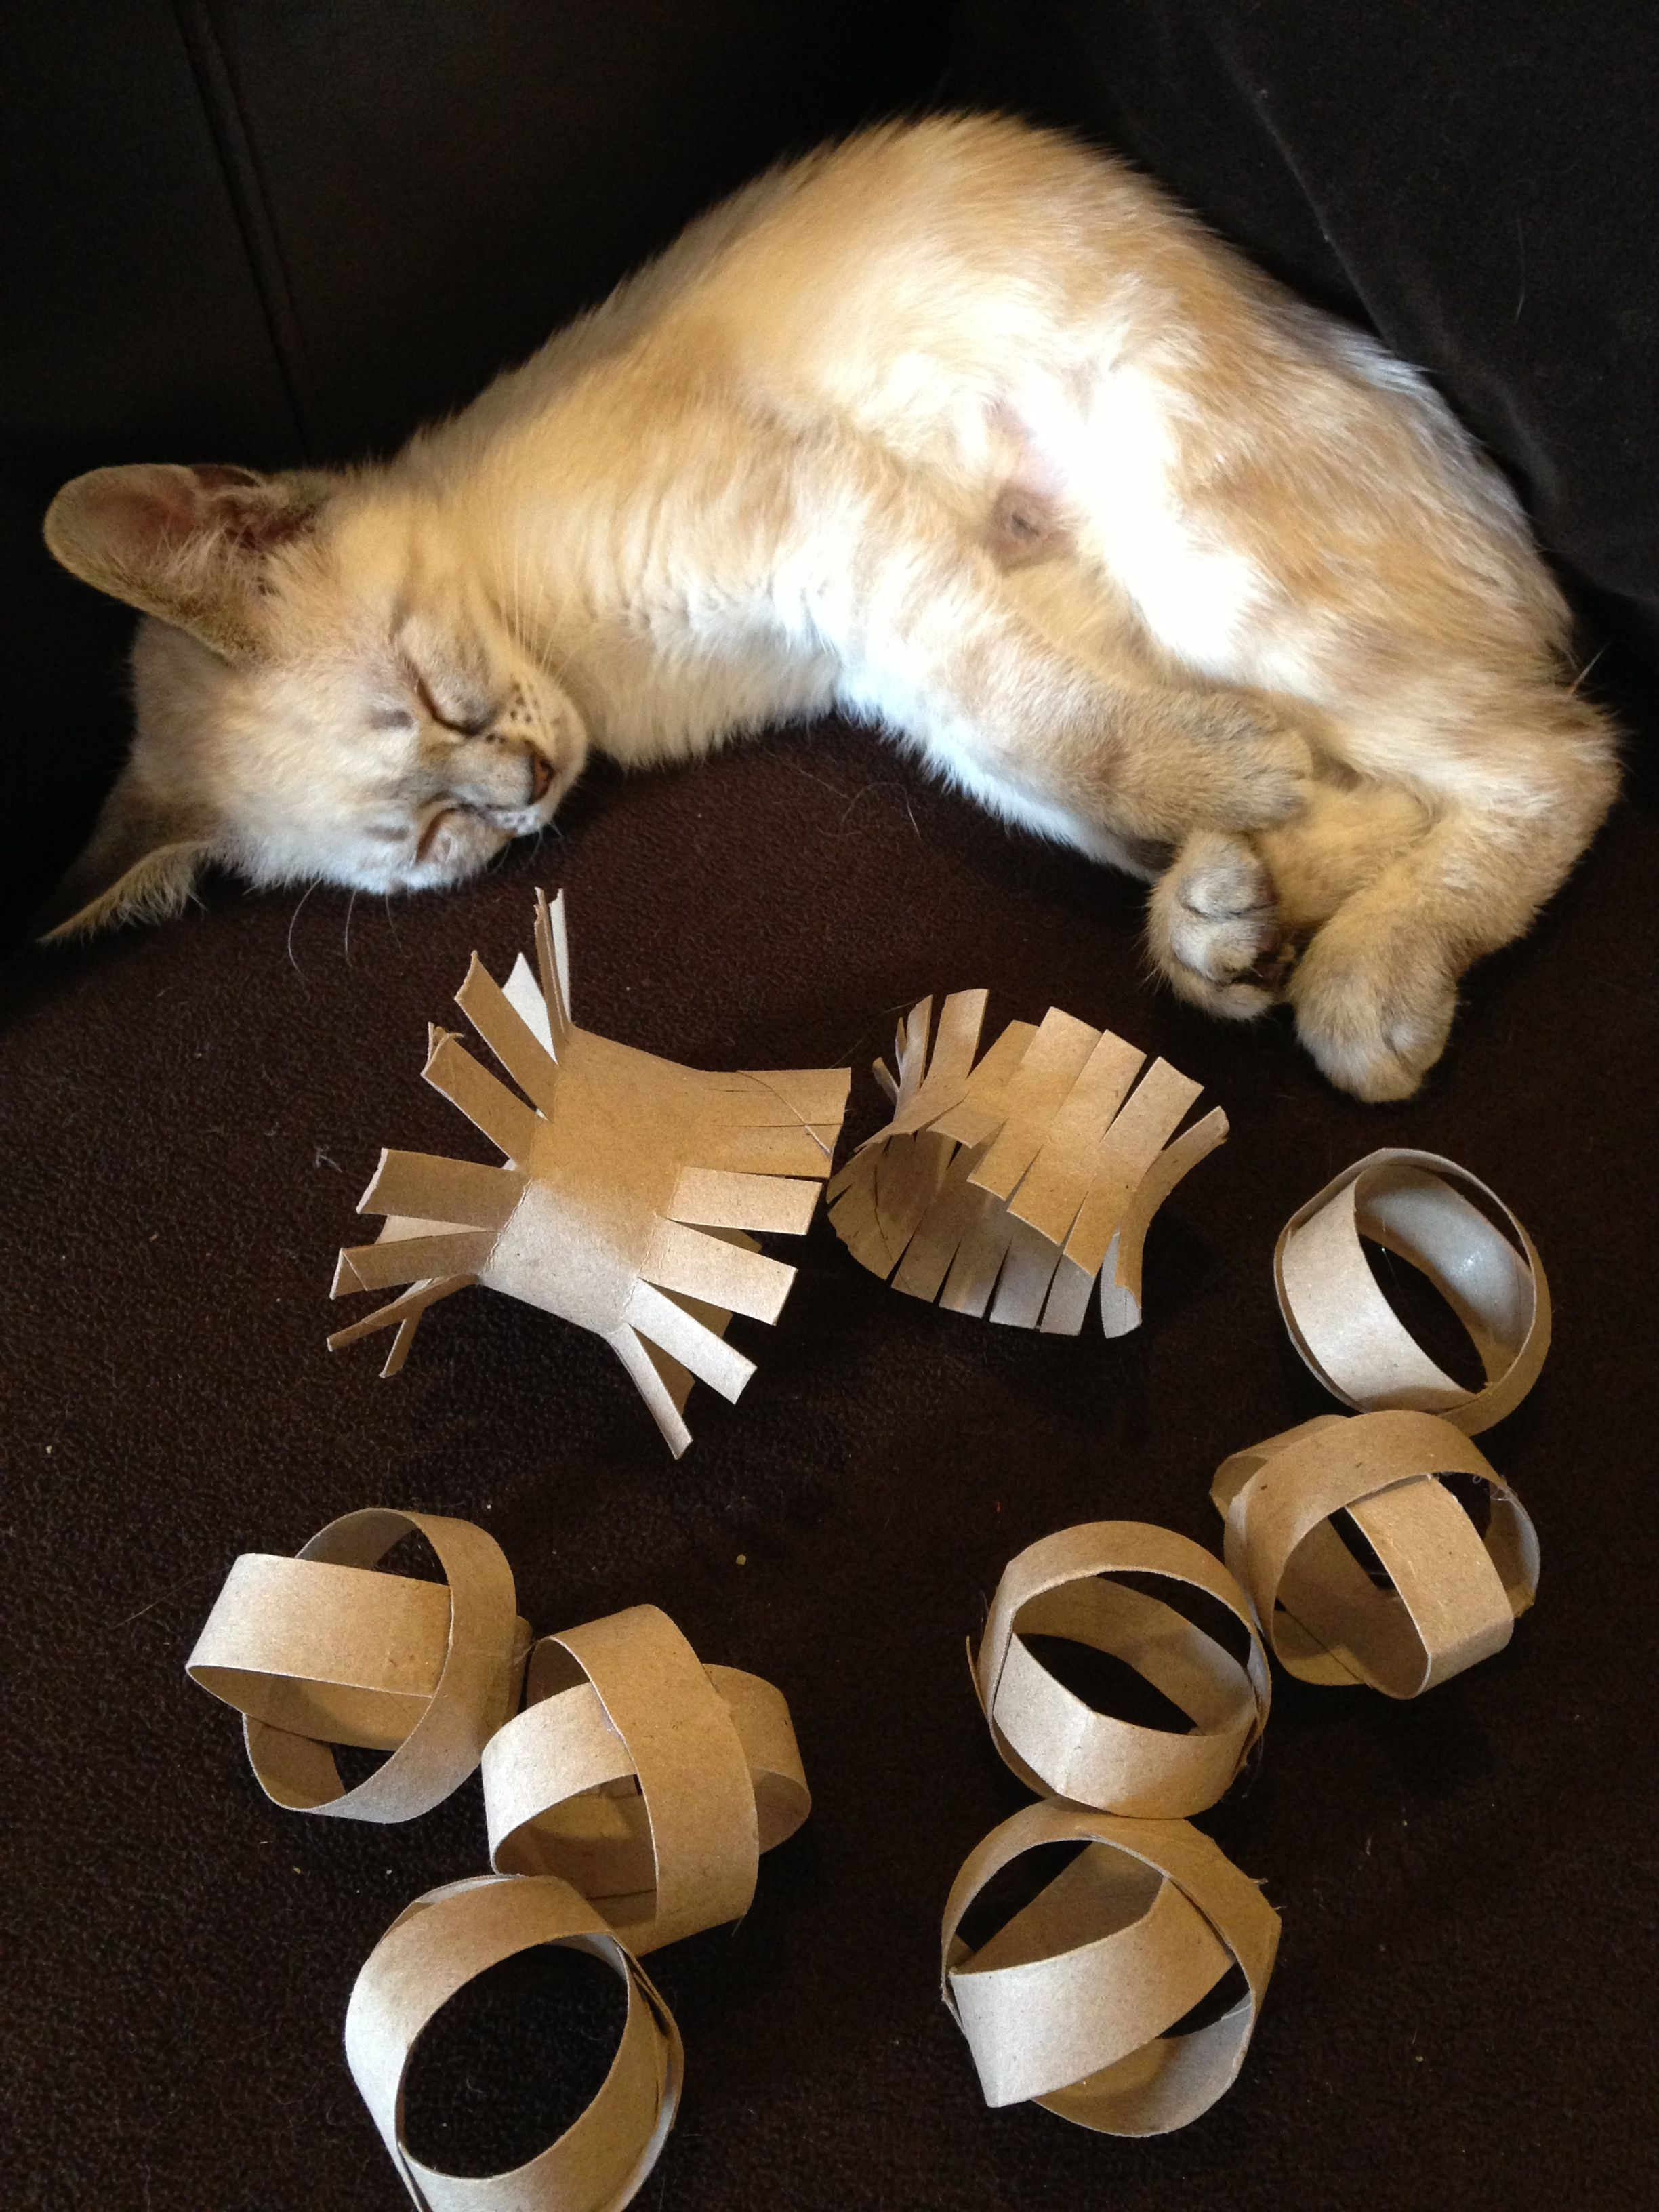 Money savers 6 more diy cat toys to keep kitty busy for Kitten toys you can make